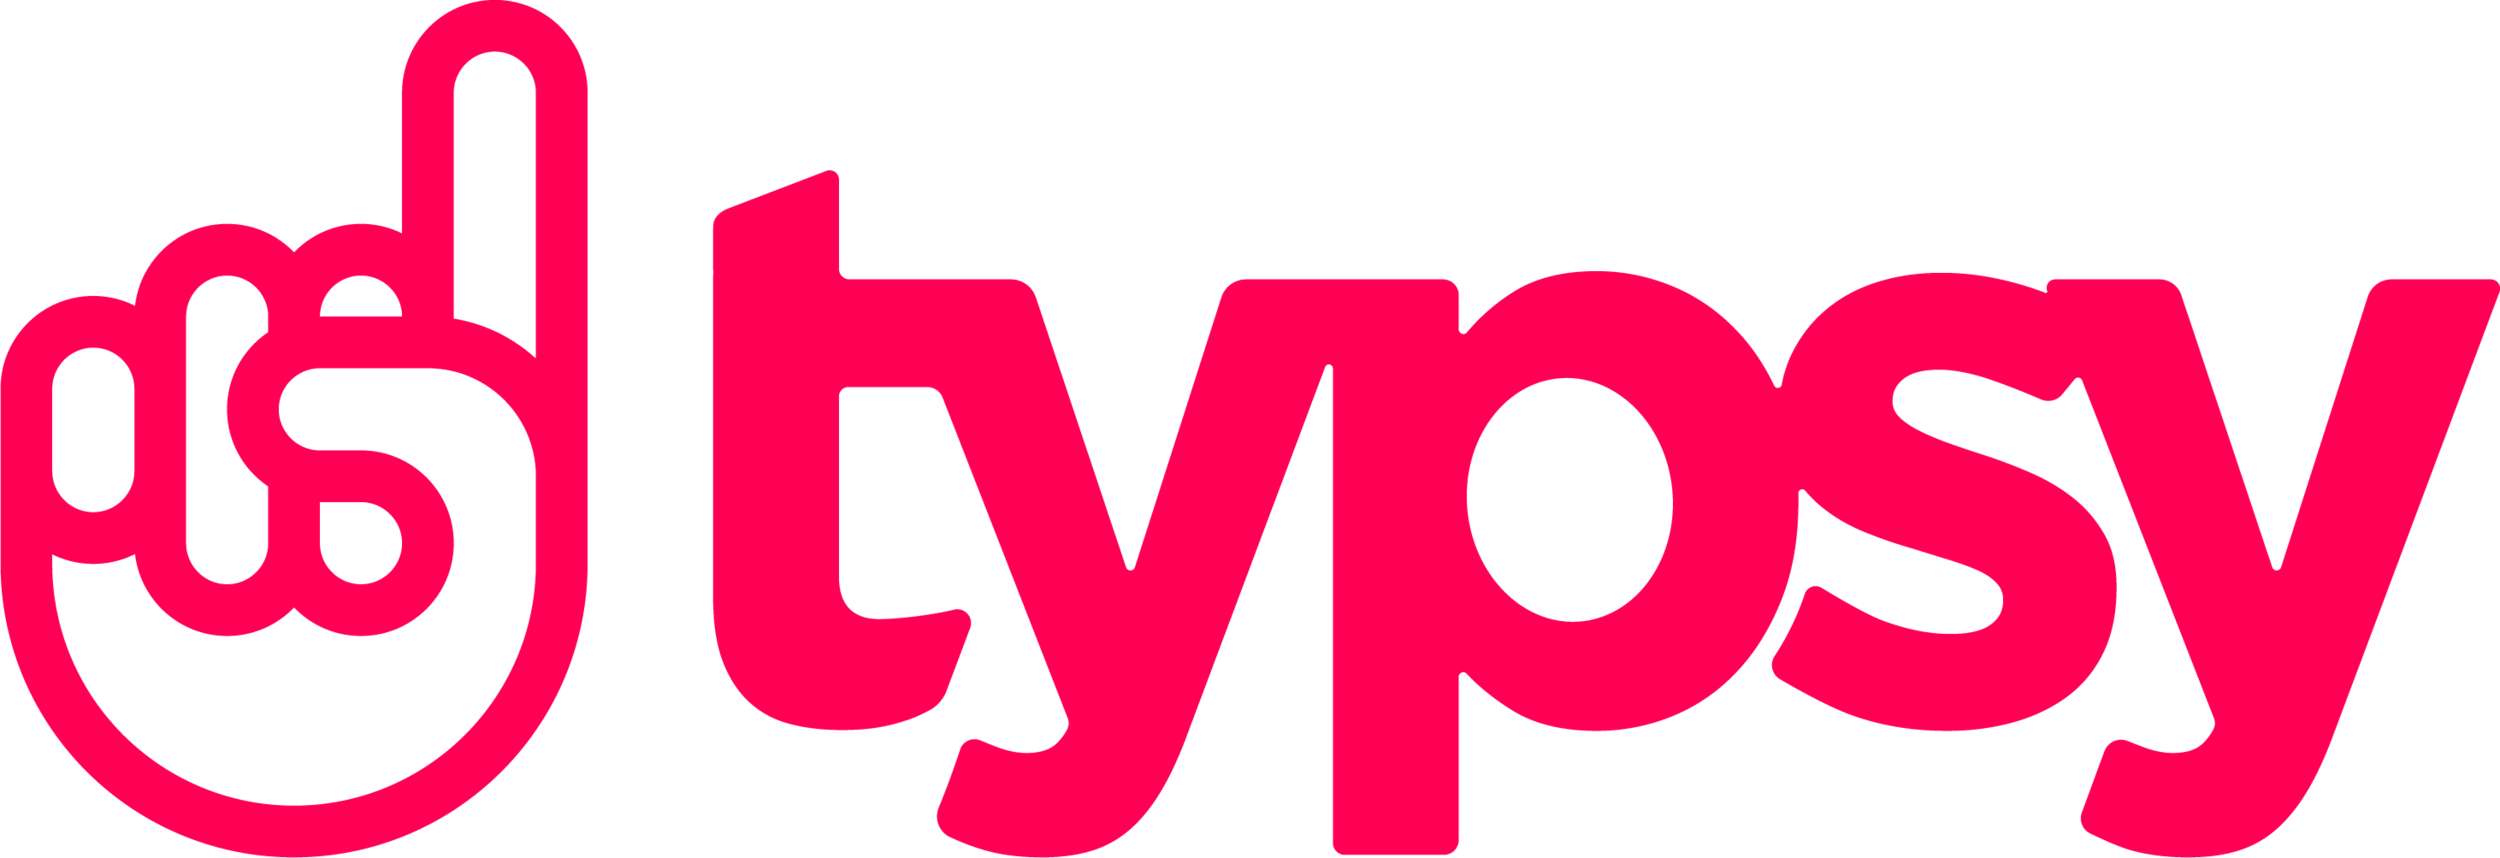 Typsy believes that hospitality moments make the world a better place. - An online learning platform with video courses from the world's best hospitality instructors.